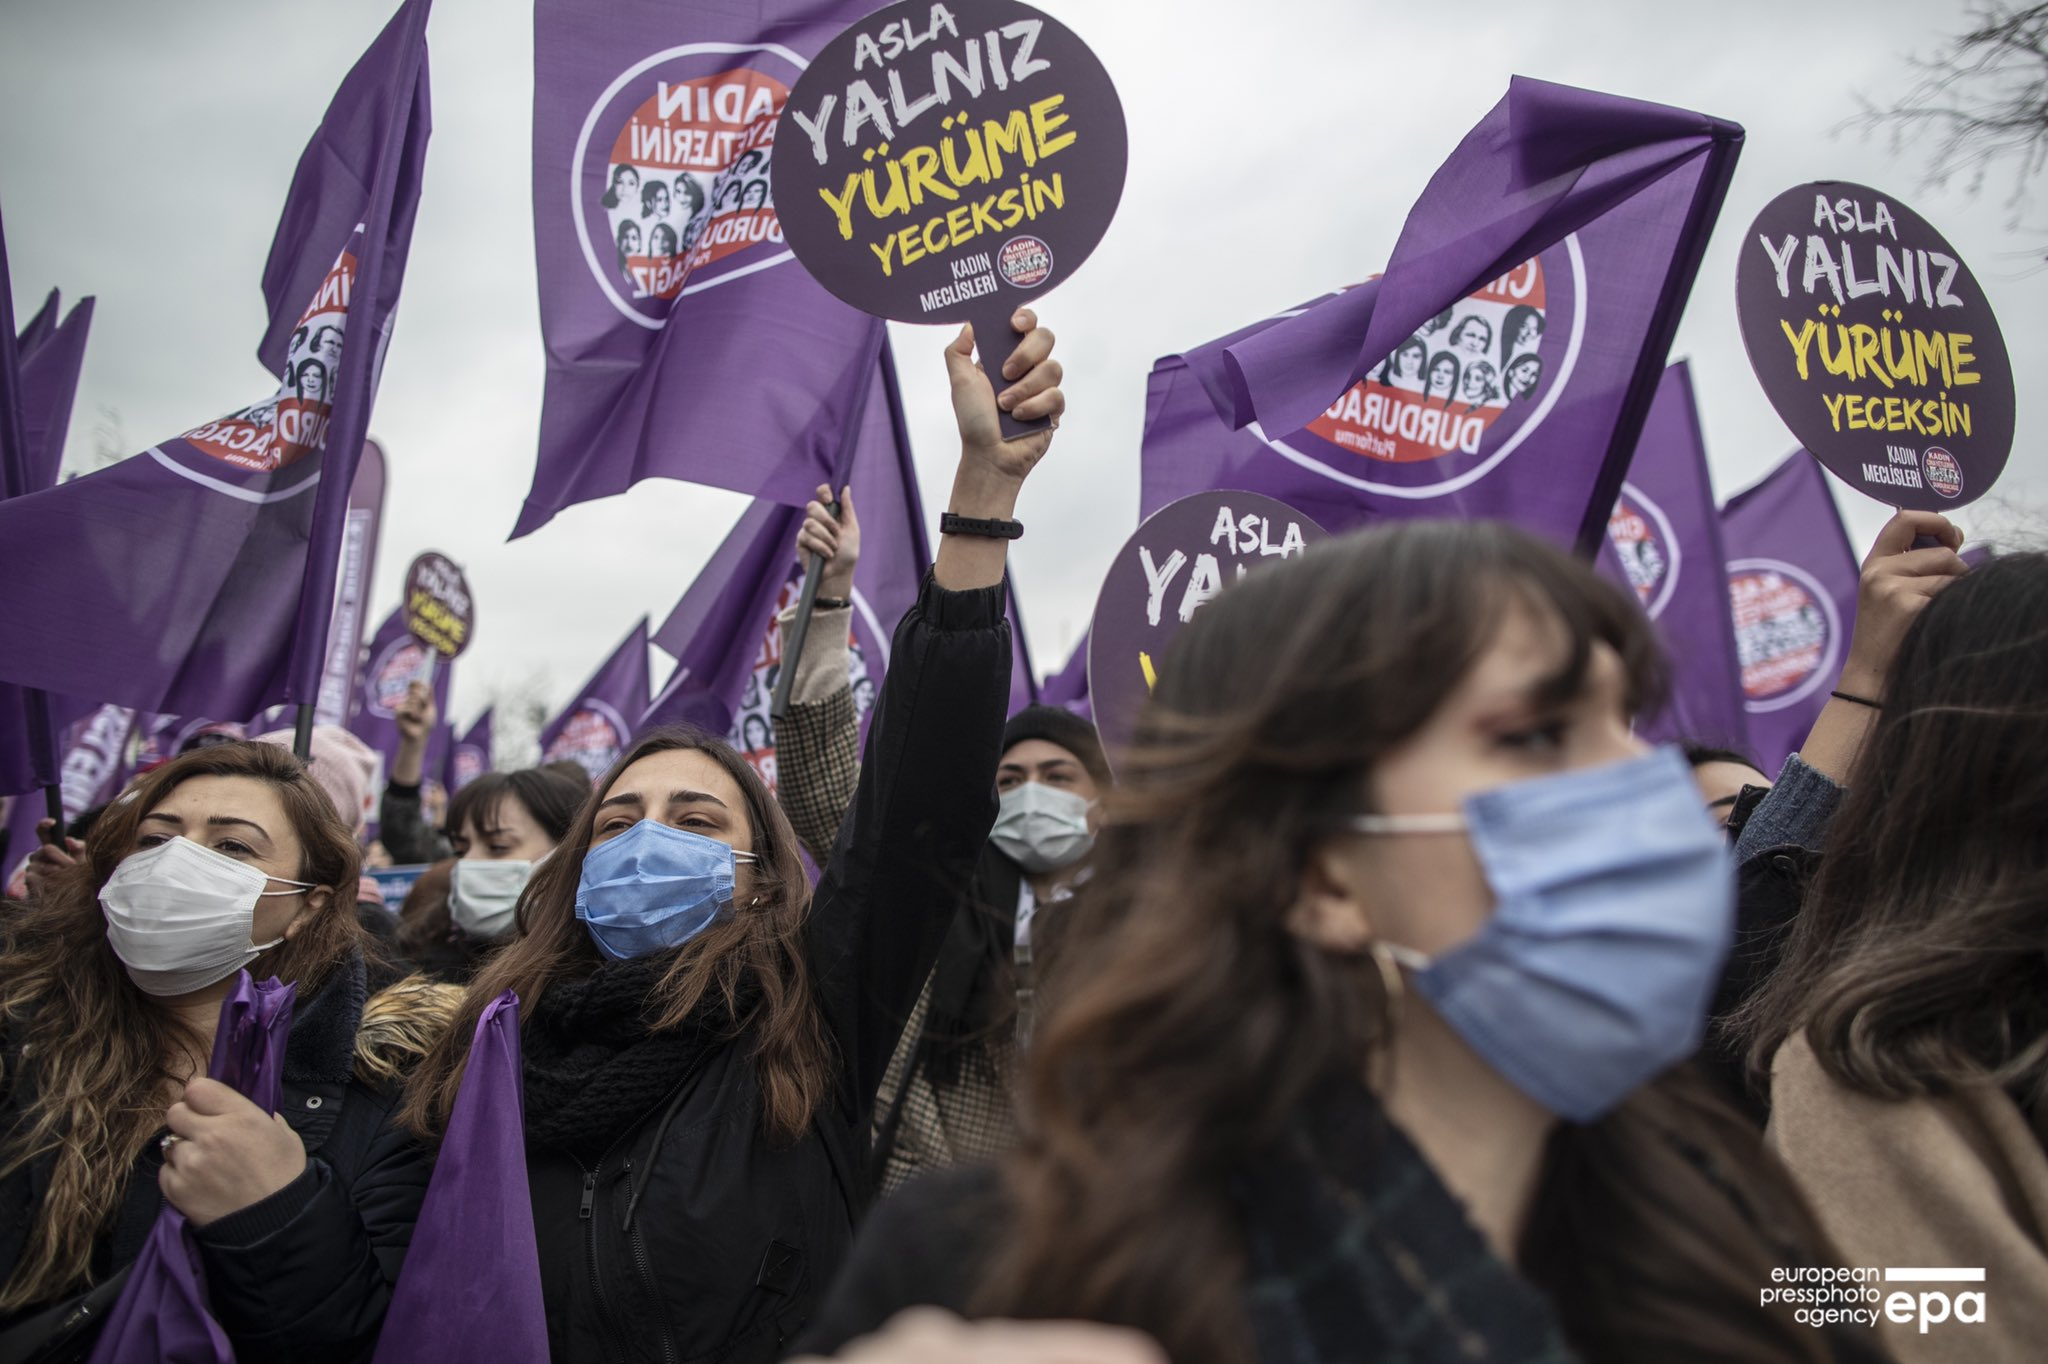 Turkey Does Not Care for Women Rights : Erdogan Signs a Decree annulling Turkey's ratification of the Istanbul Convention